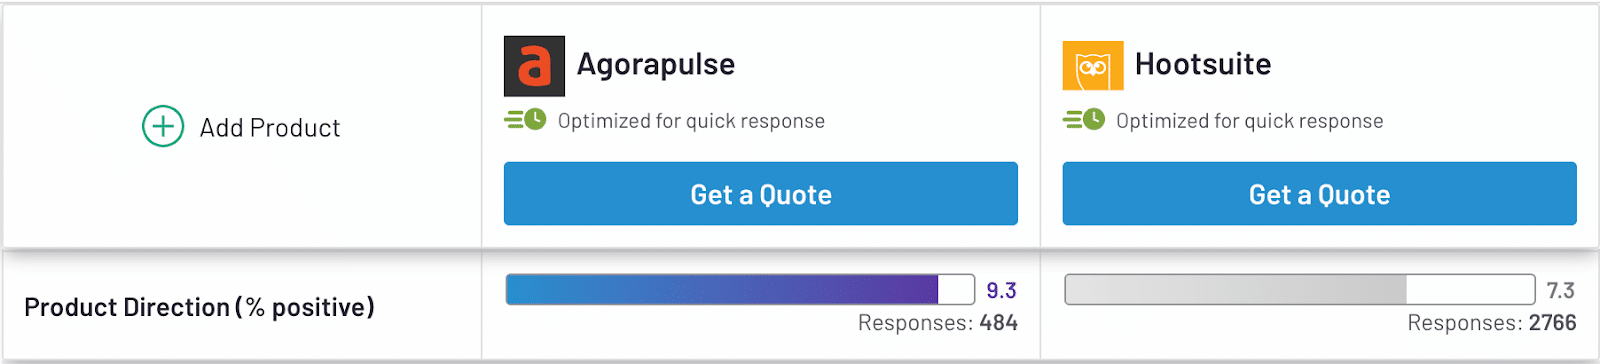 product direction of hootsuite and agorapulse